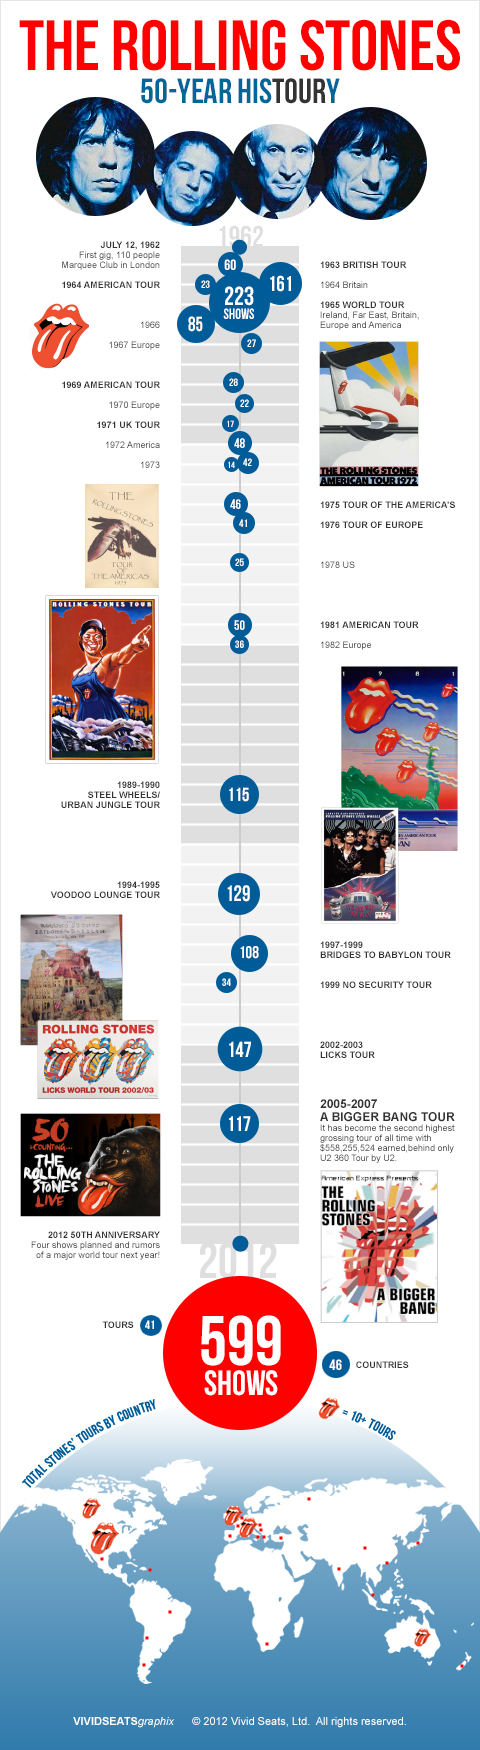 The Rolling Stones: 50 Years of HisTOURy [INFOGRAPHIC]